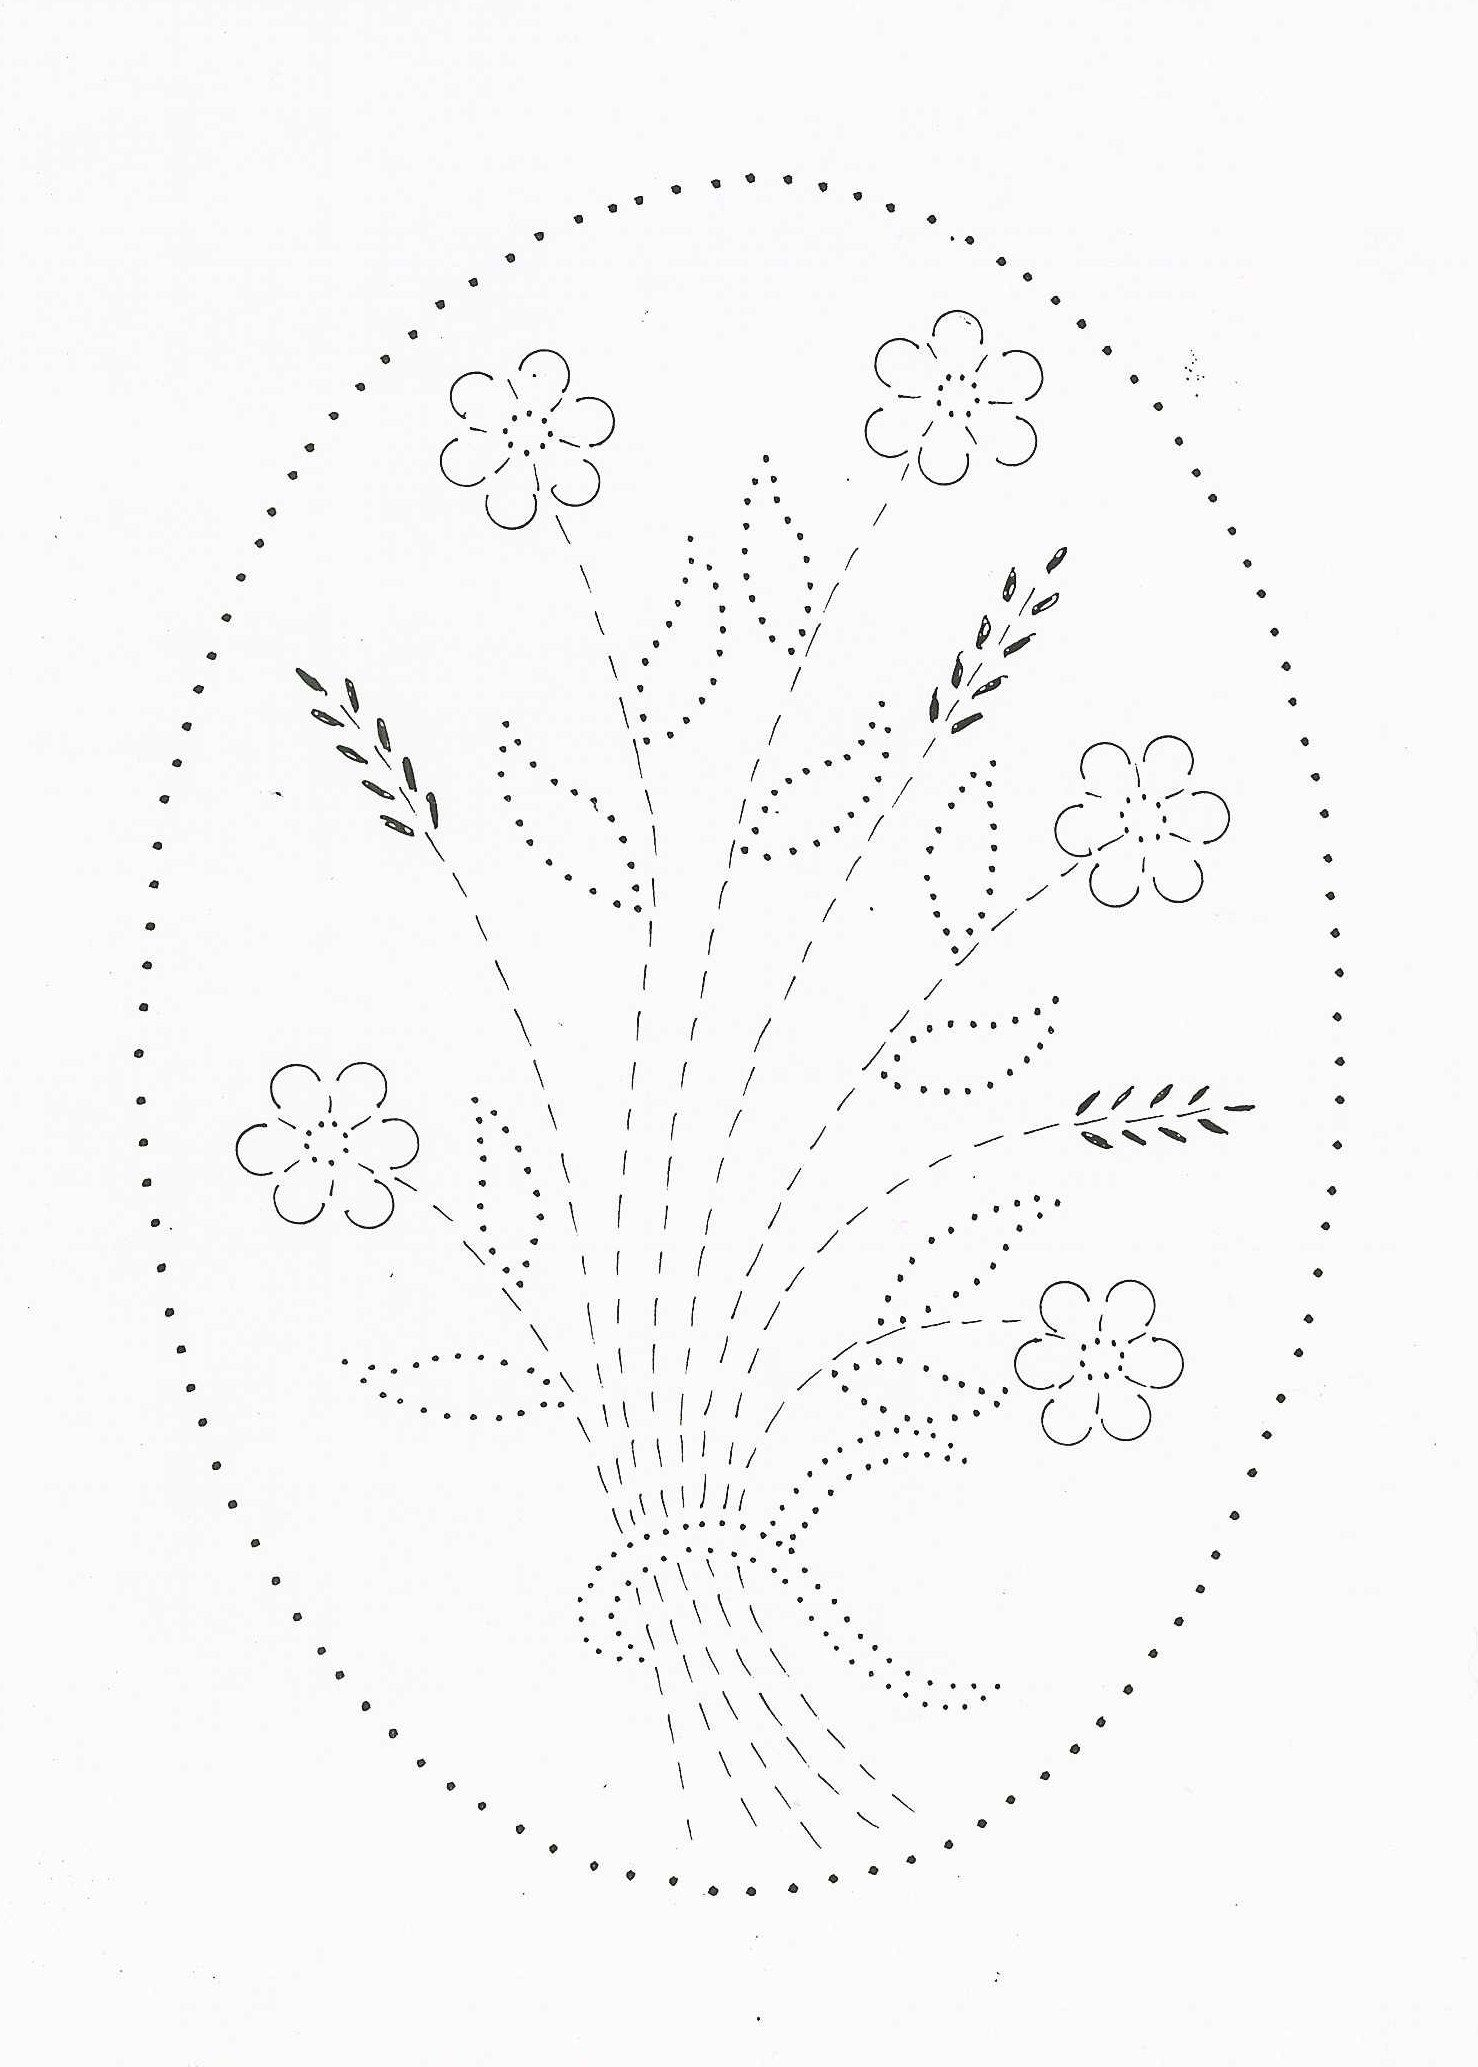 Wheat Flowers Tin Punch Patterns Embroidery Patterns Vintage Punched Tin Patterns Paper Embroidery